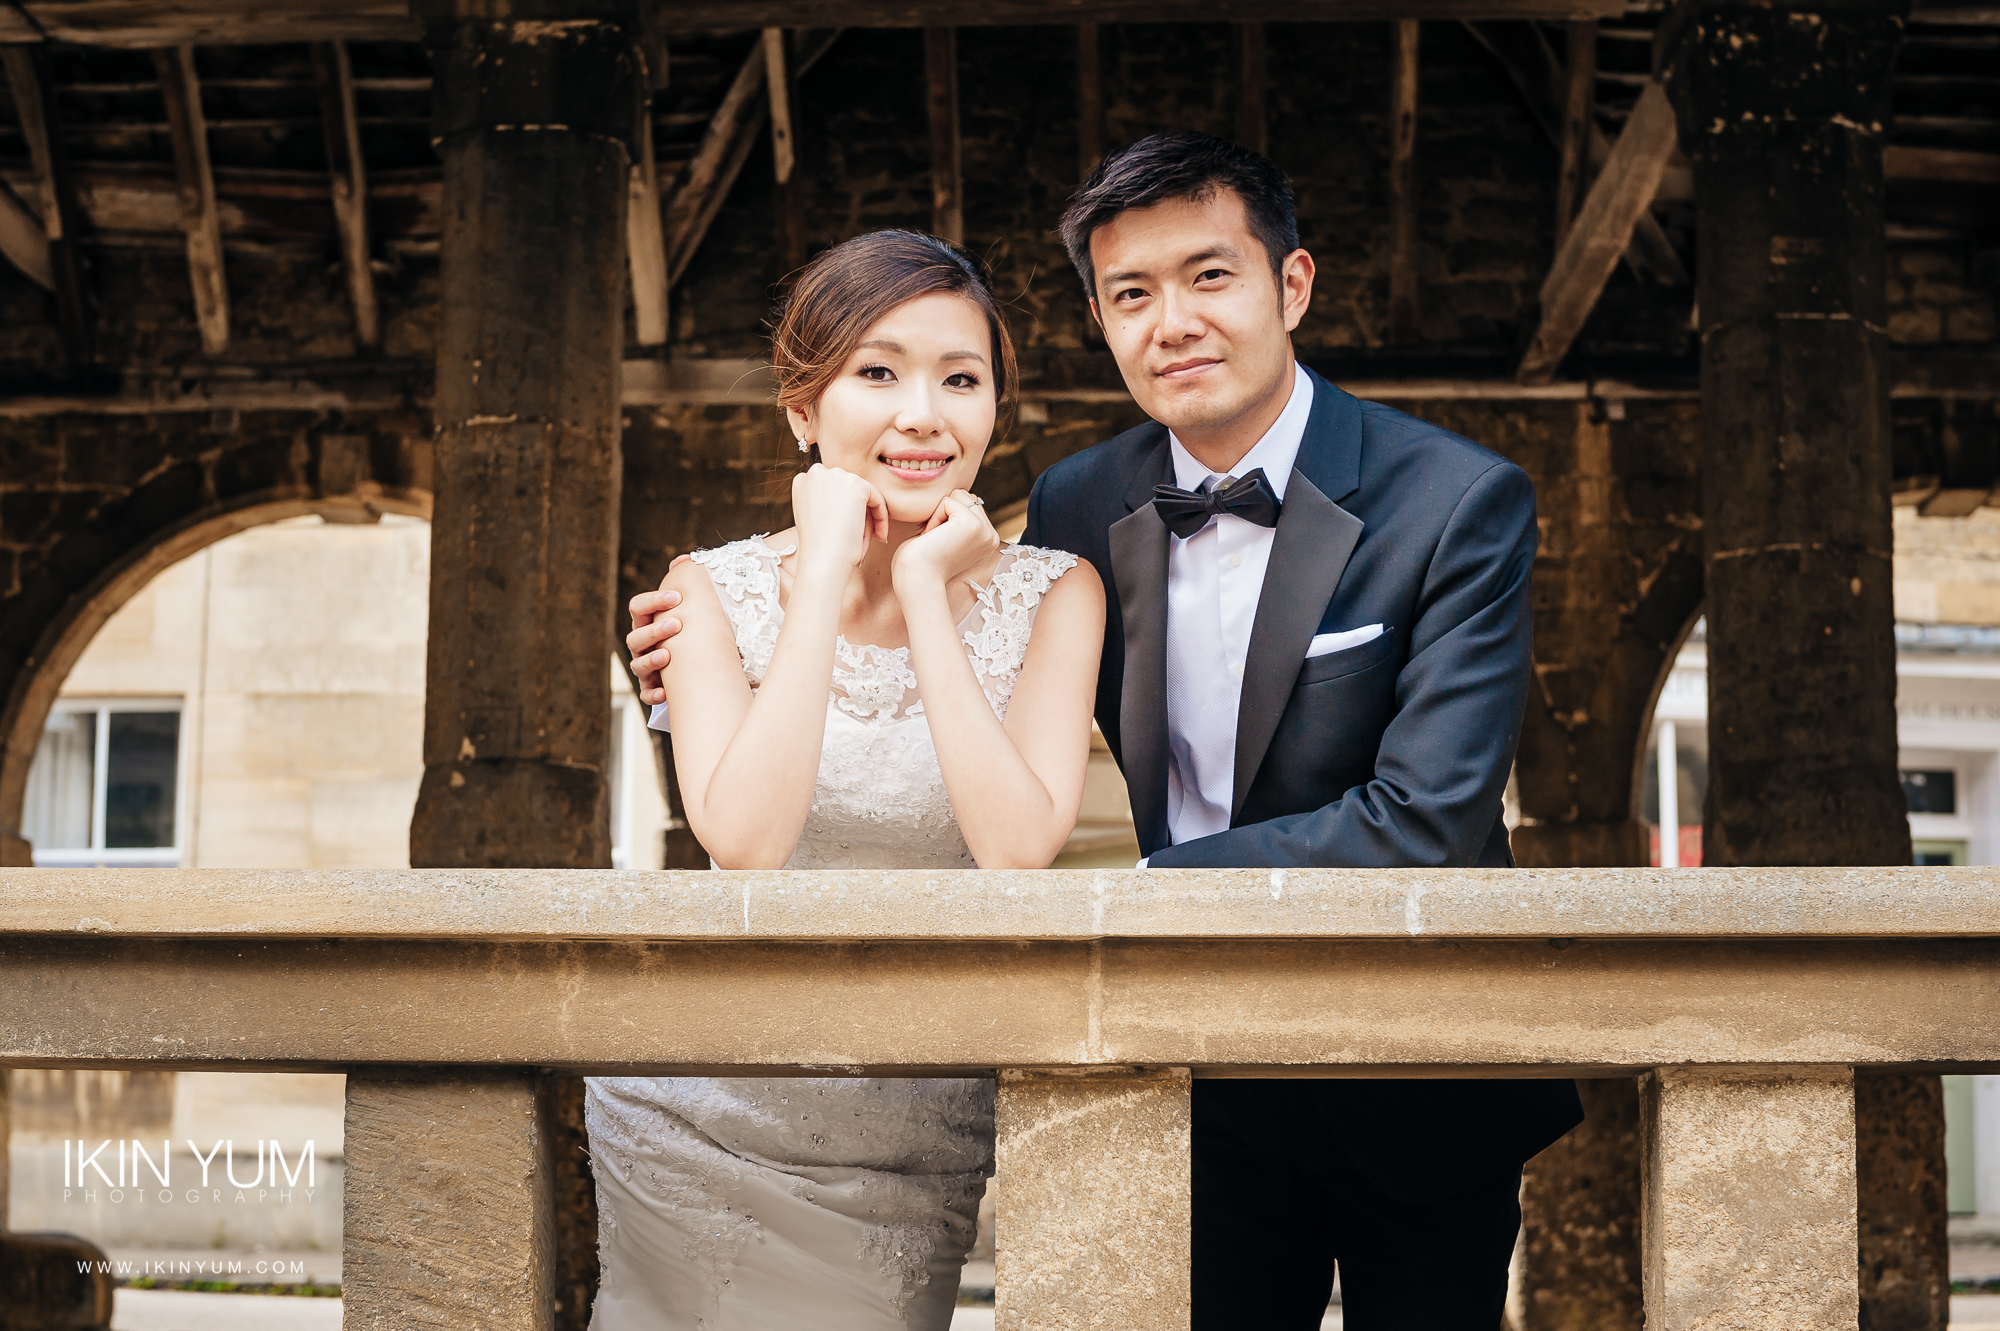 Carmen & Dennis Pre-Wedding Shoot - Ikin Yum Photography-061.jpg